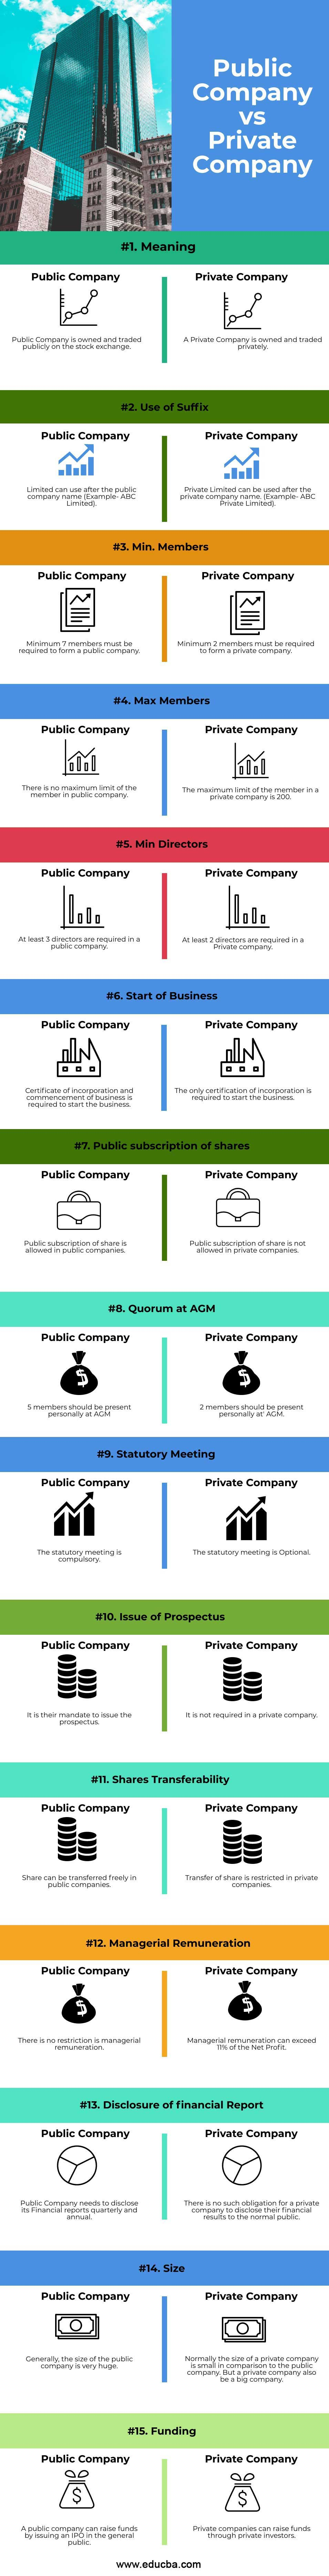 Public-Company-vs-Private-Company-info